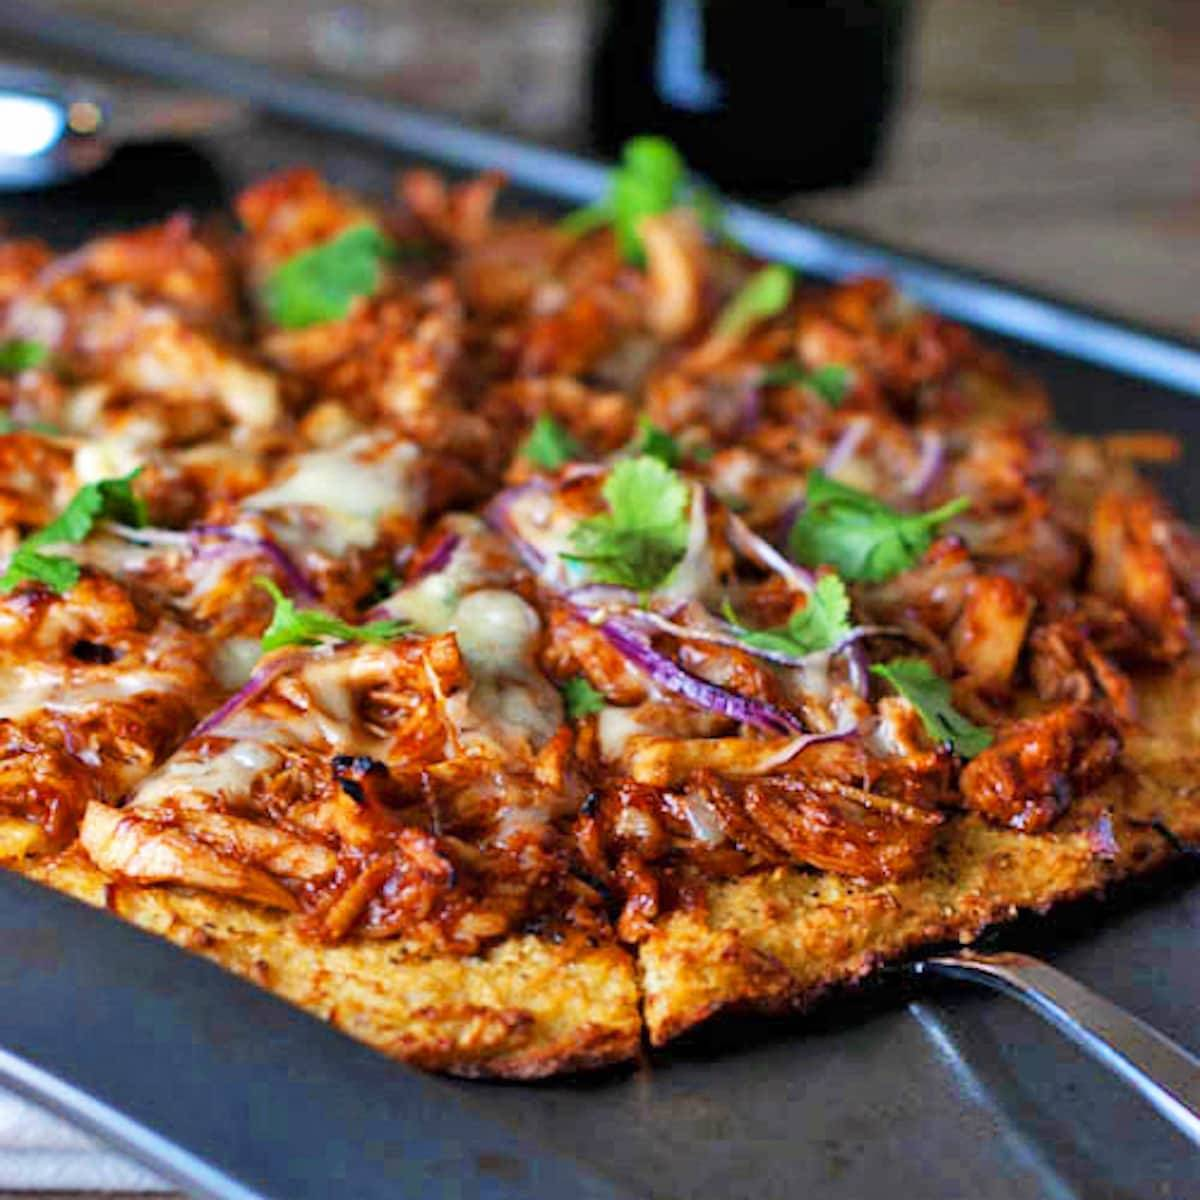 BBQ chicken pizza cut into slices.